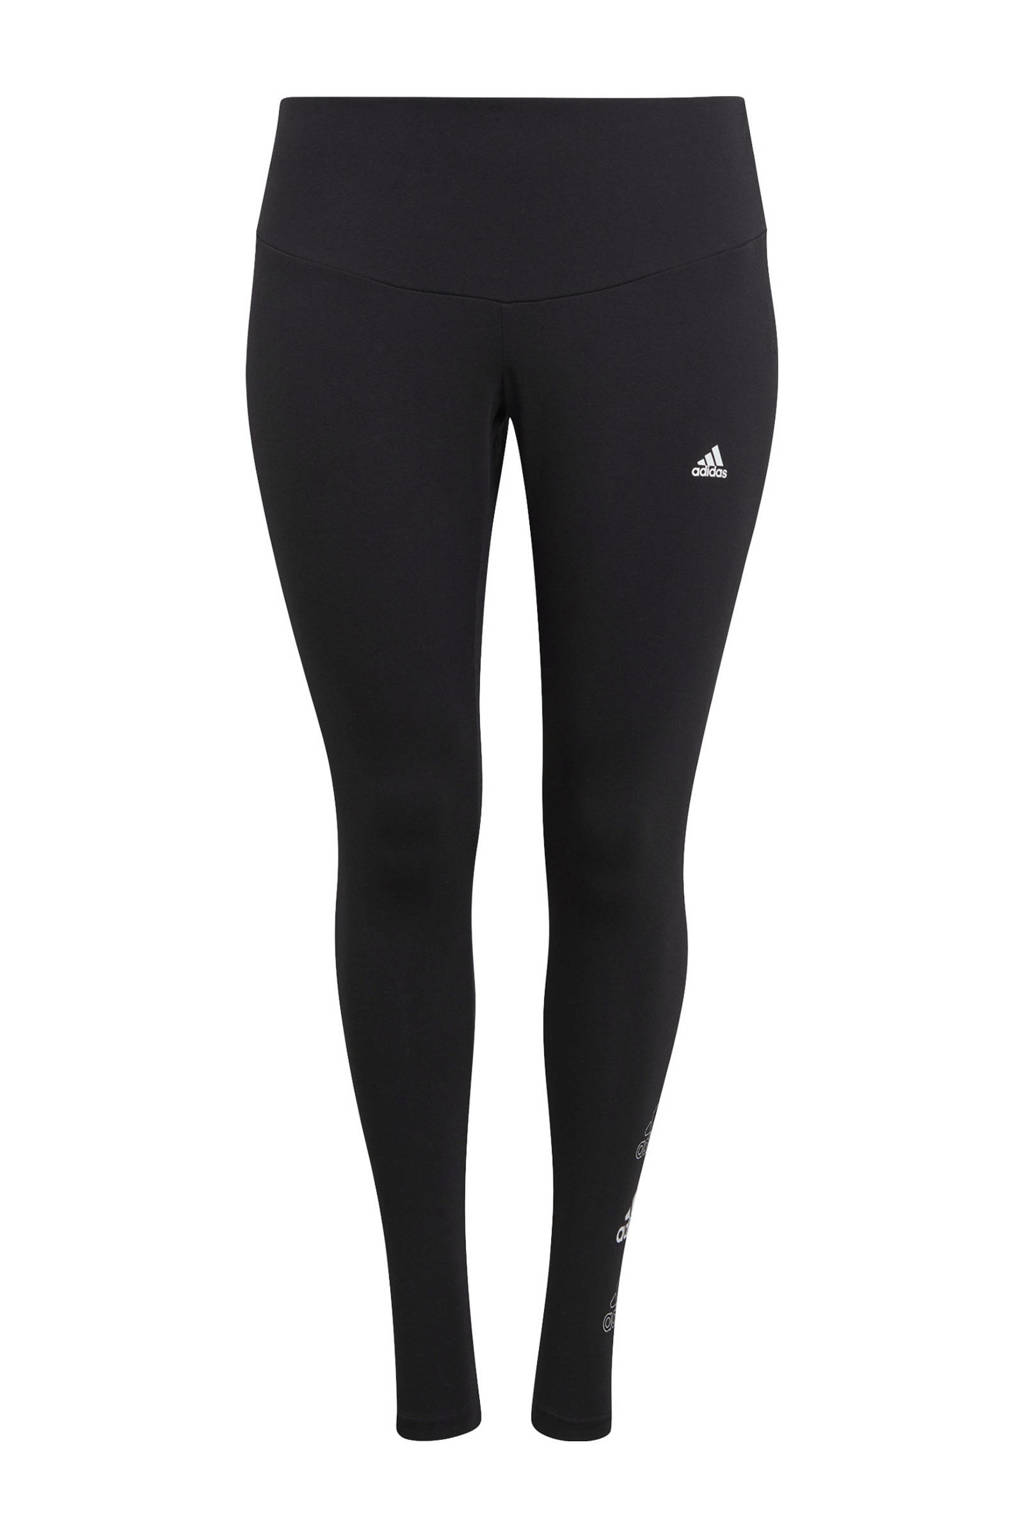 adidas Performance Plus Size sportlegging zwart, Zwart